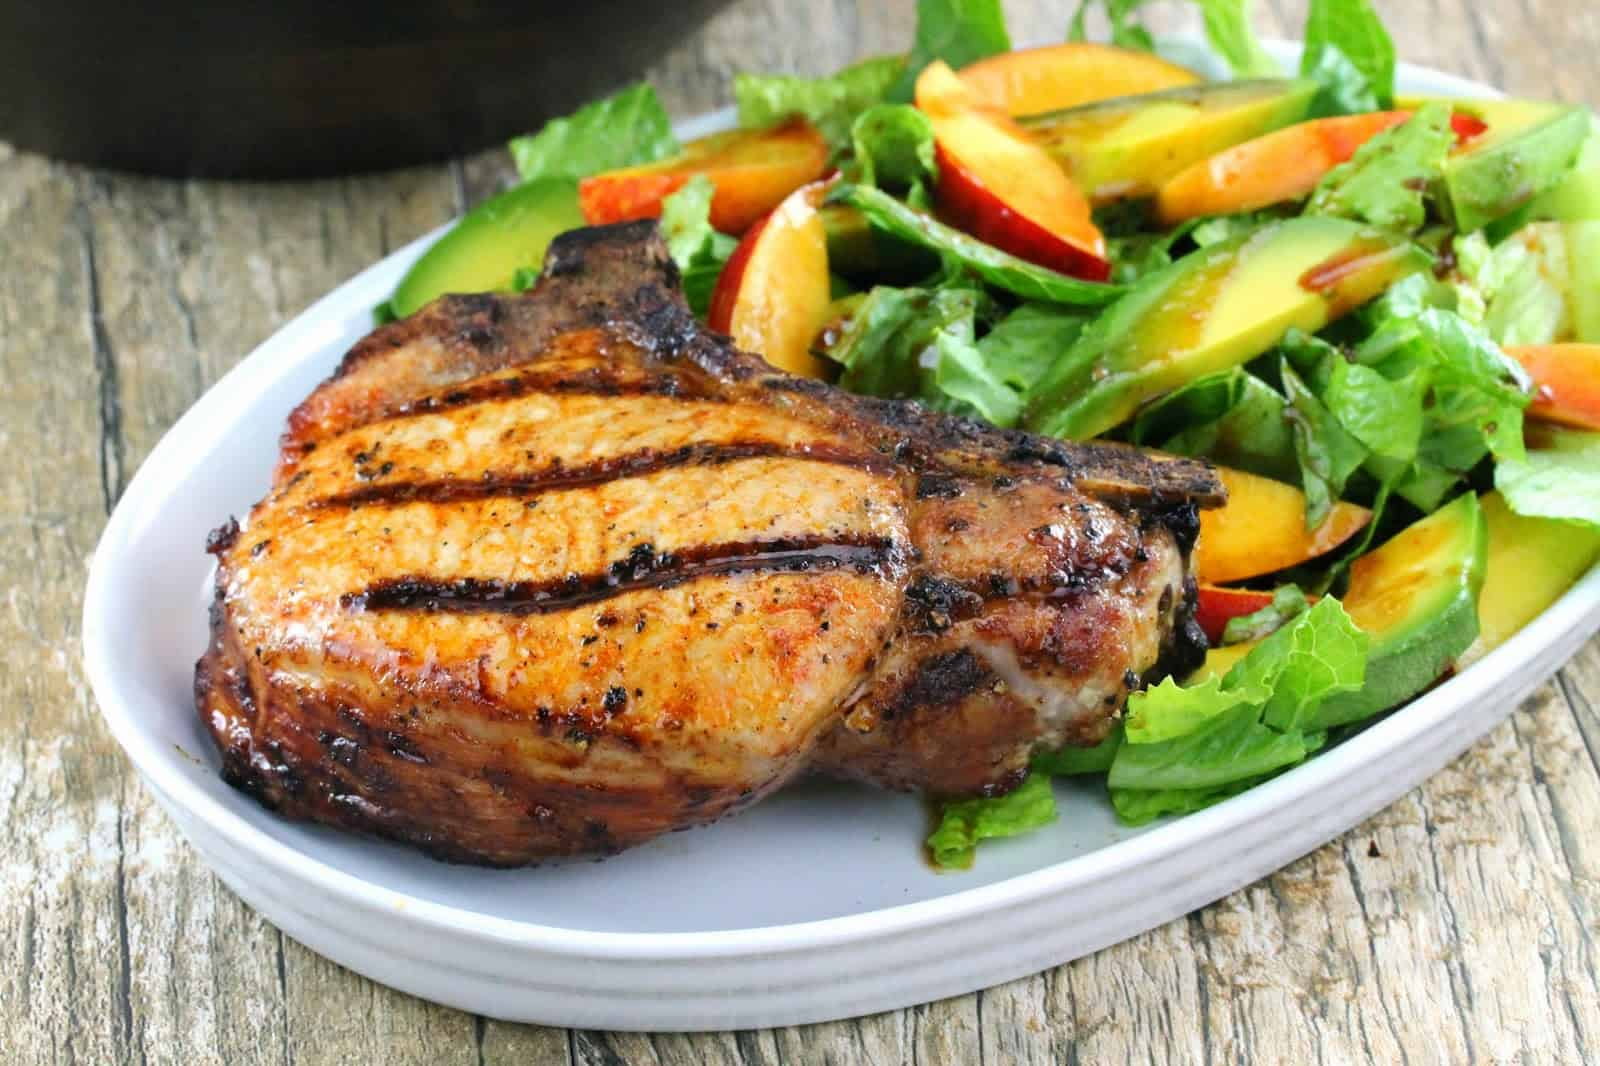 Grilled Pork Chop and a Nectarine and Avocado Salad on a white plate.